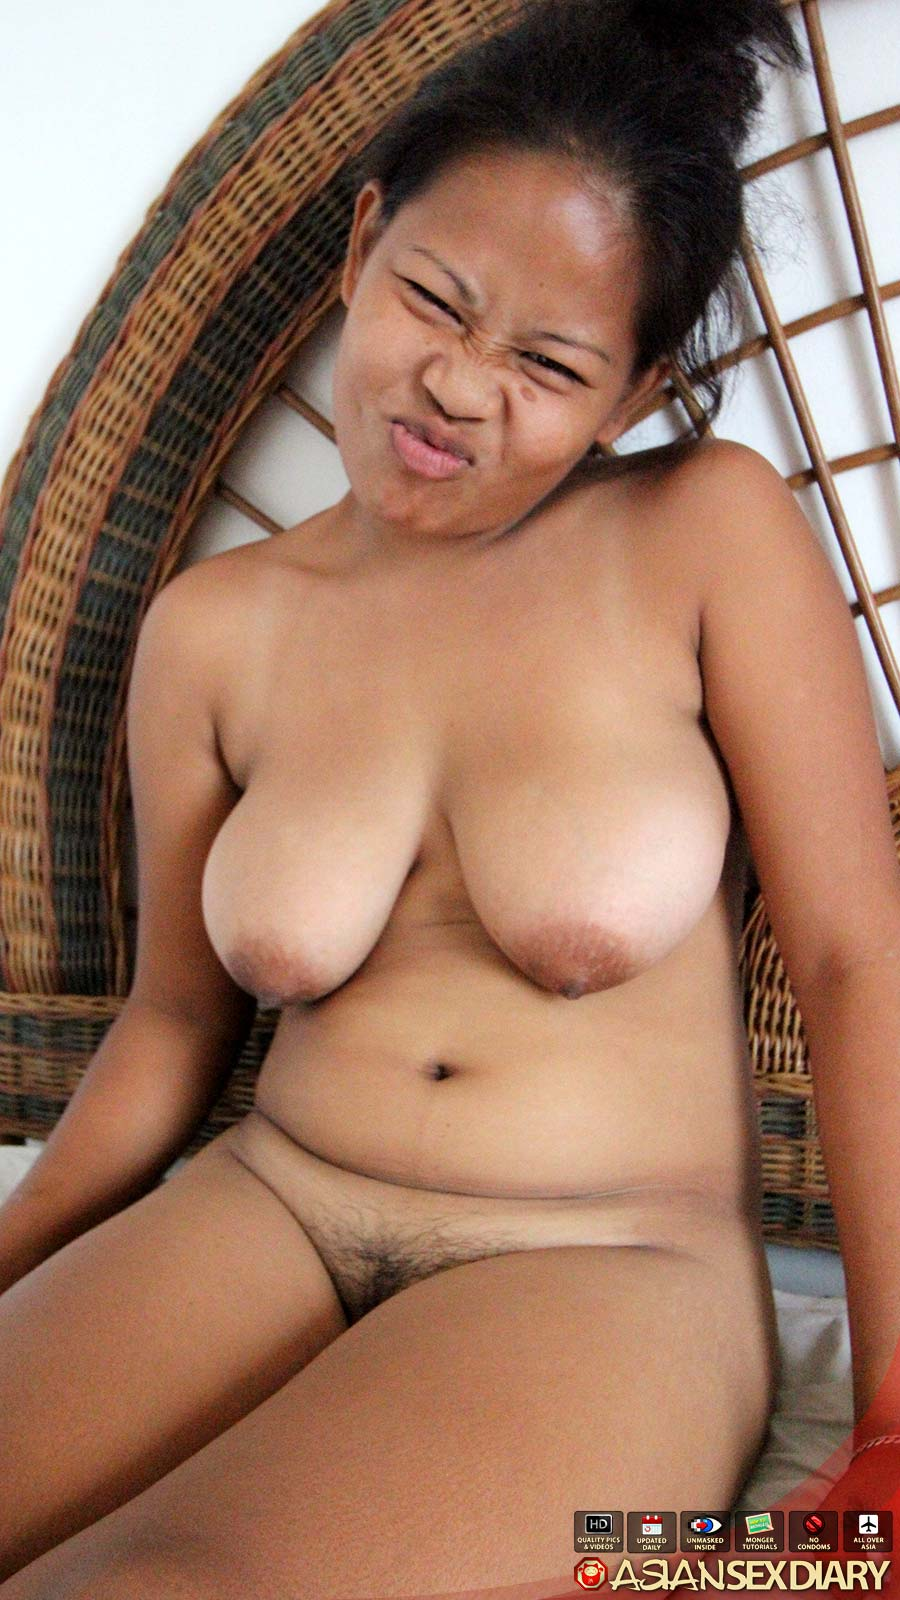 Chubby Asian Women Nude